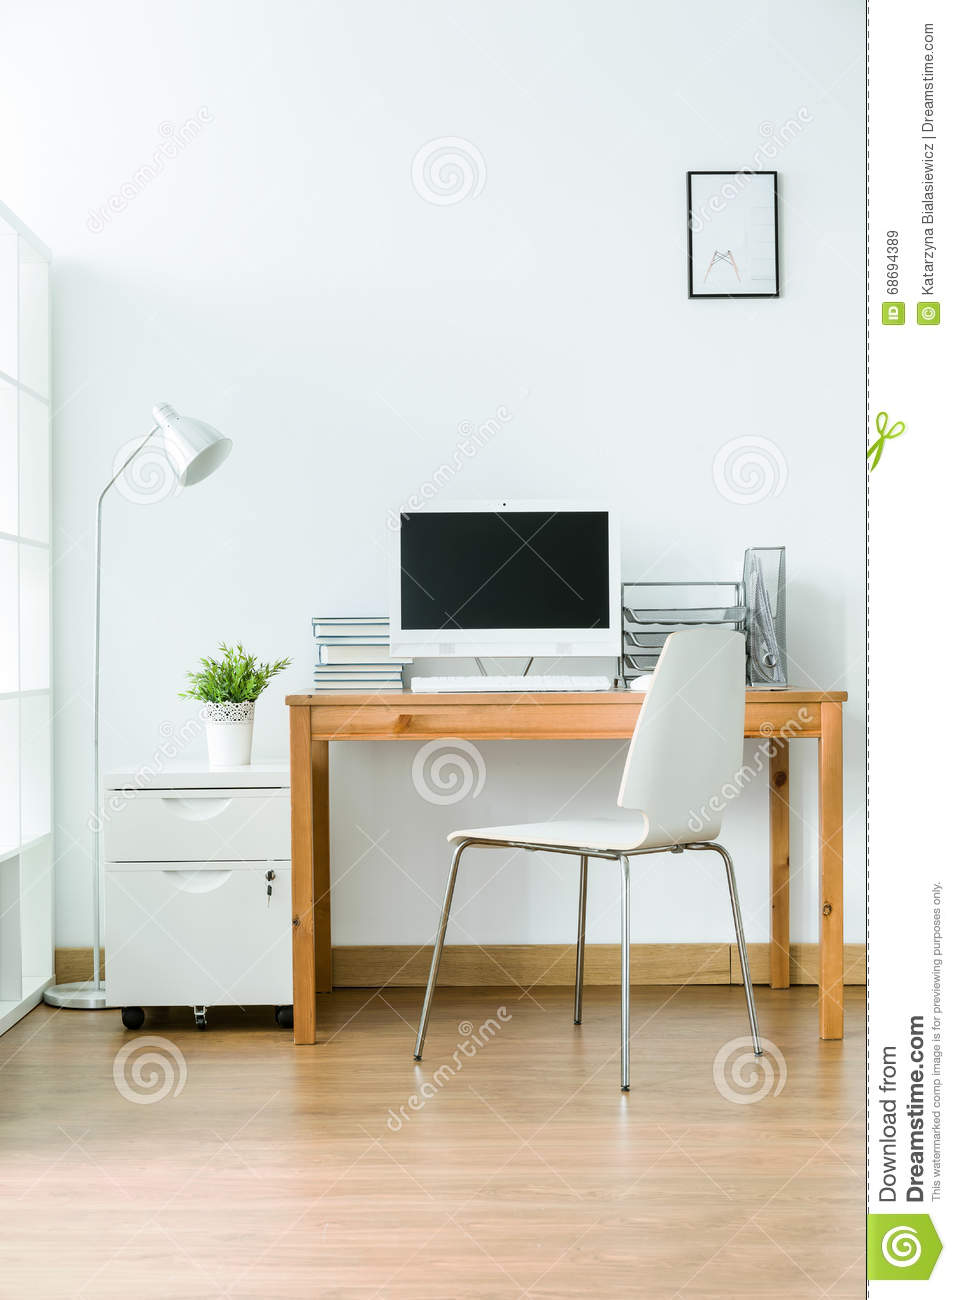 Study room in modern style stock image. Image of home ...